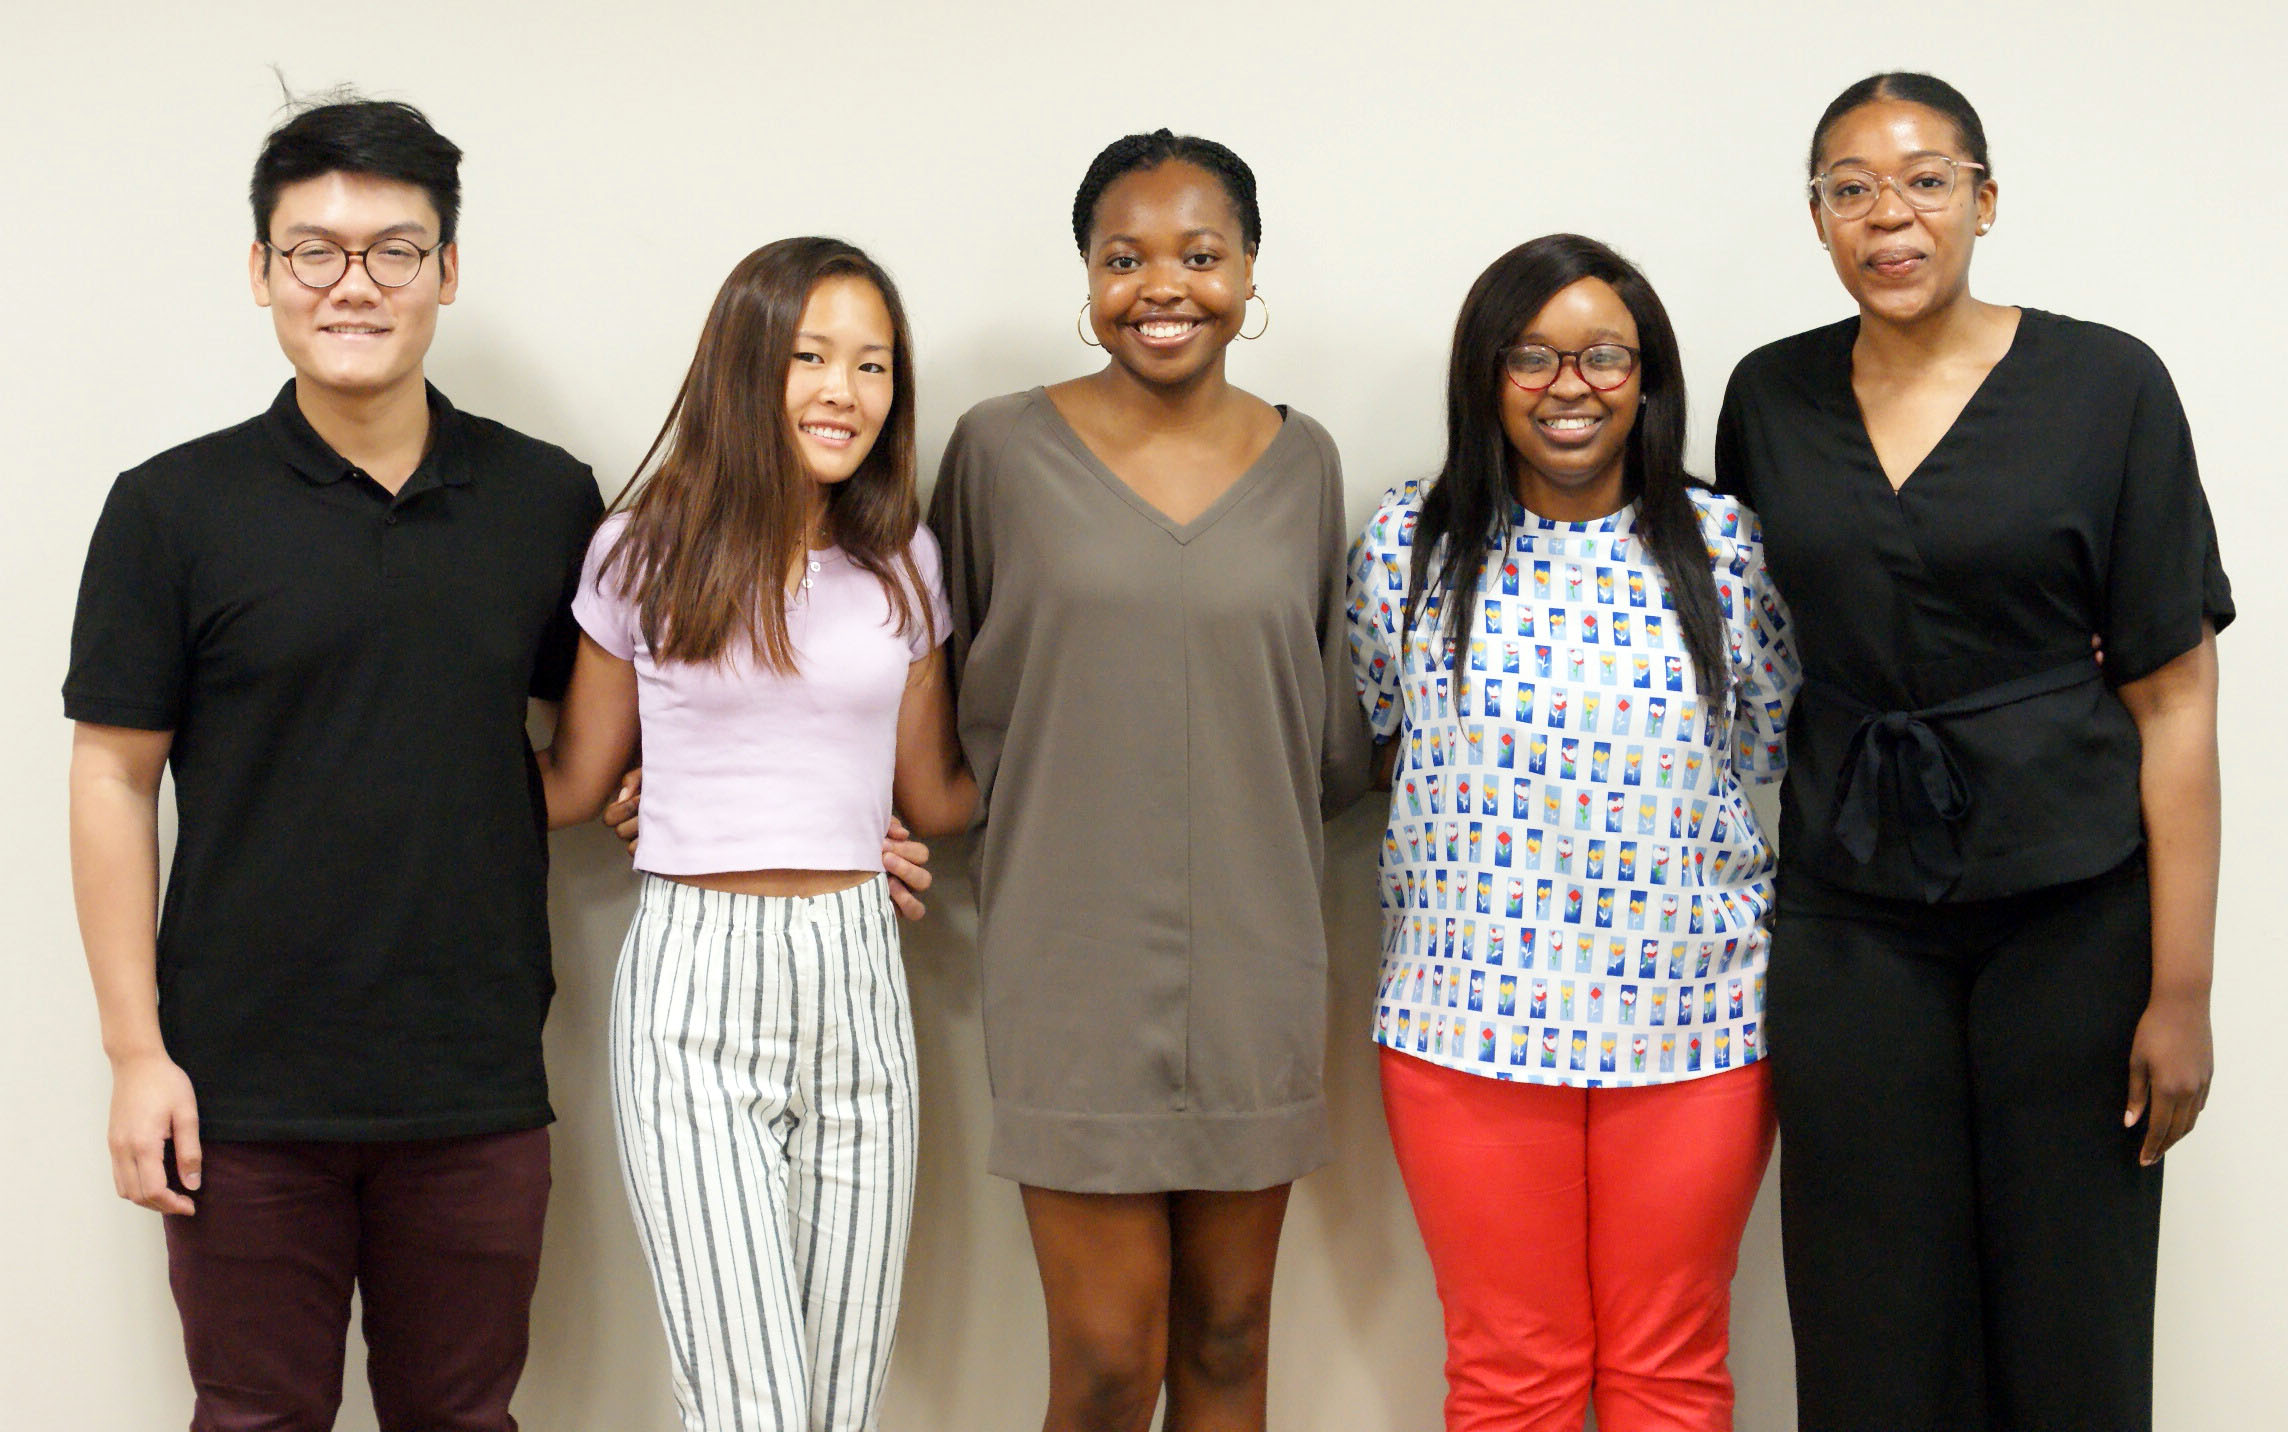 RESURP Students Brandon Bui, Angela Renne, Lenique Huggins, Destanei Hargrove, and Michaela Brown